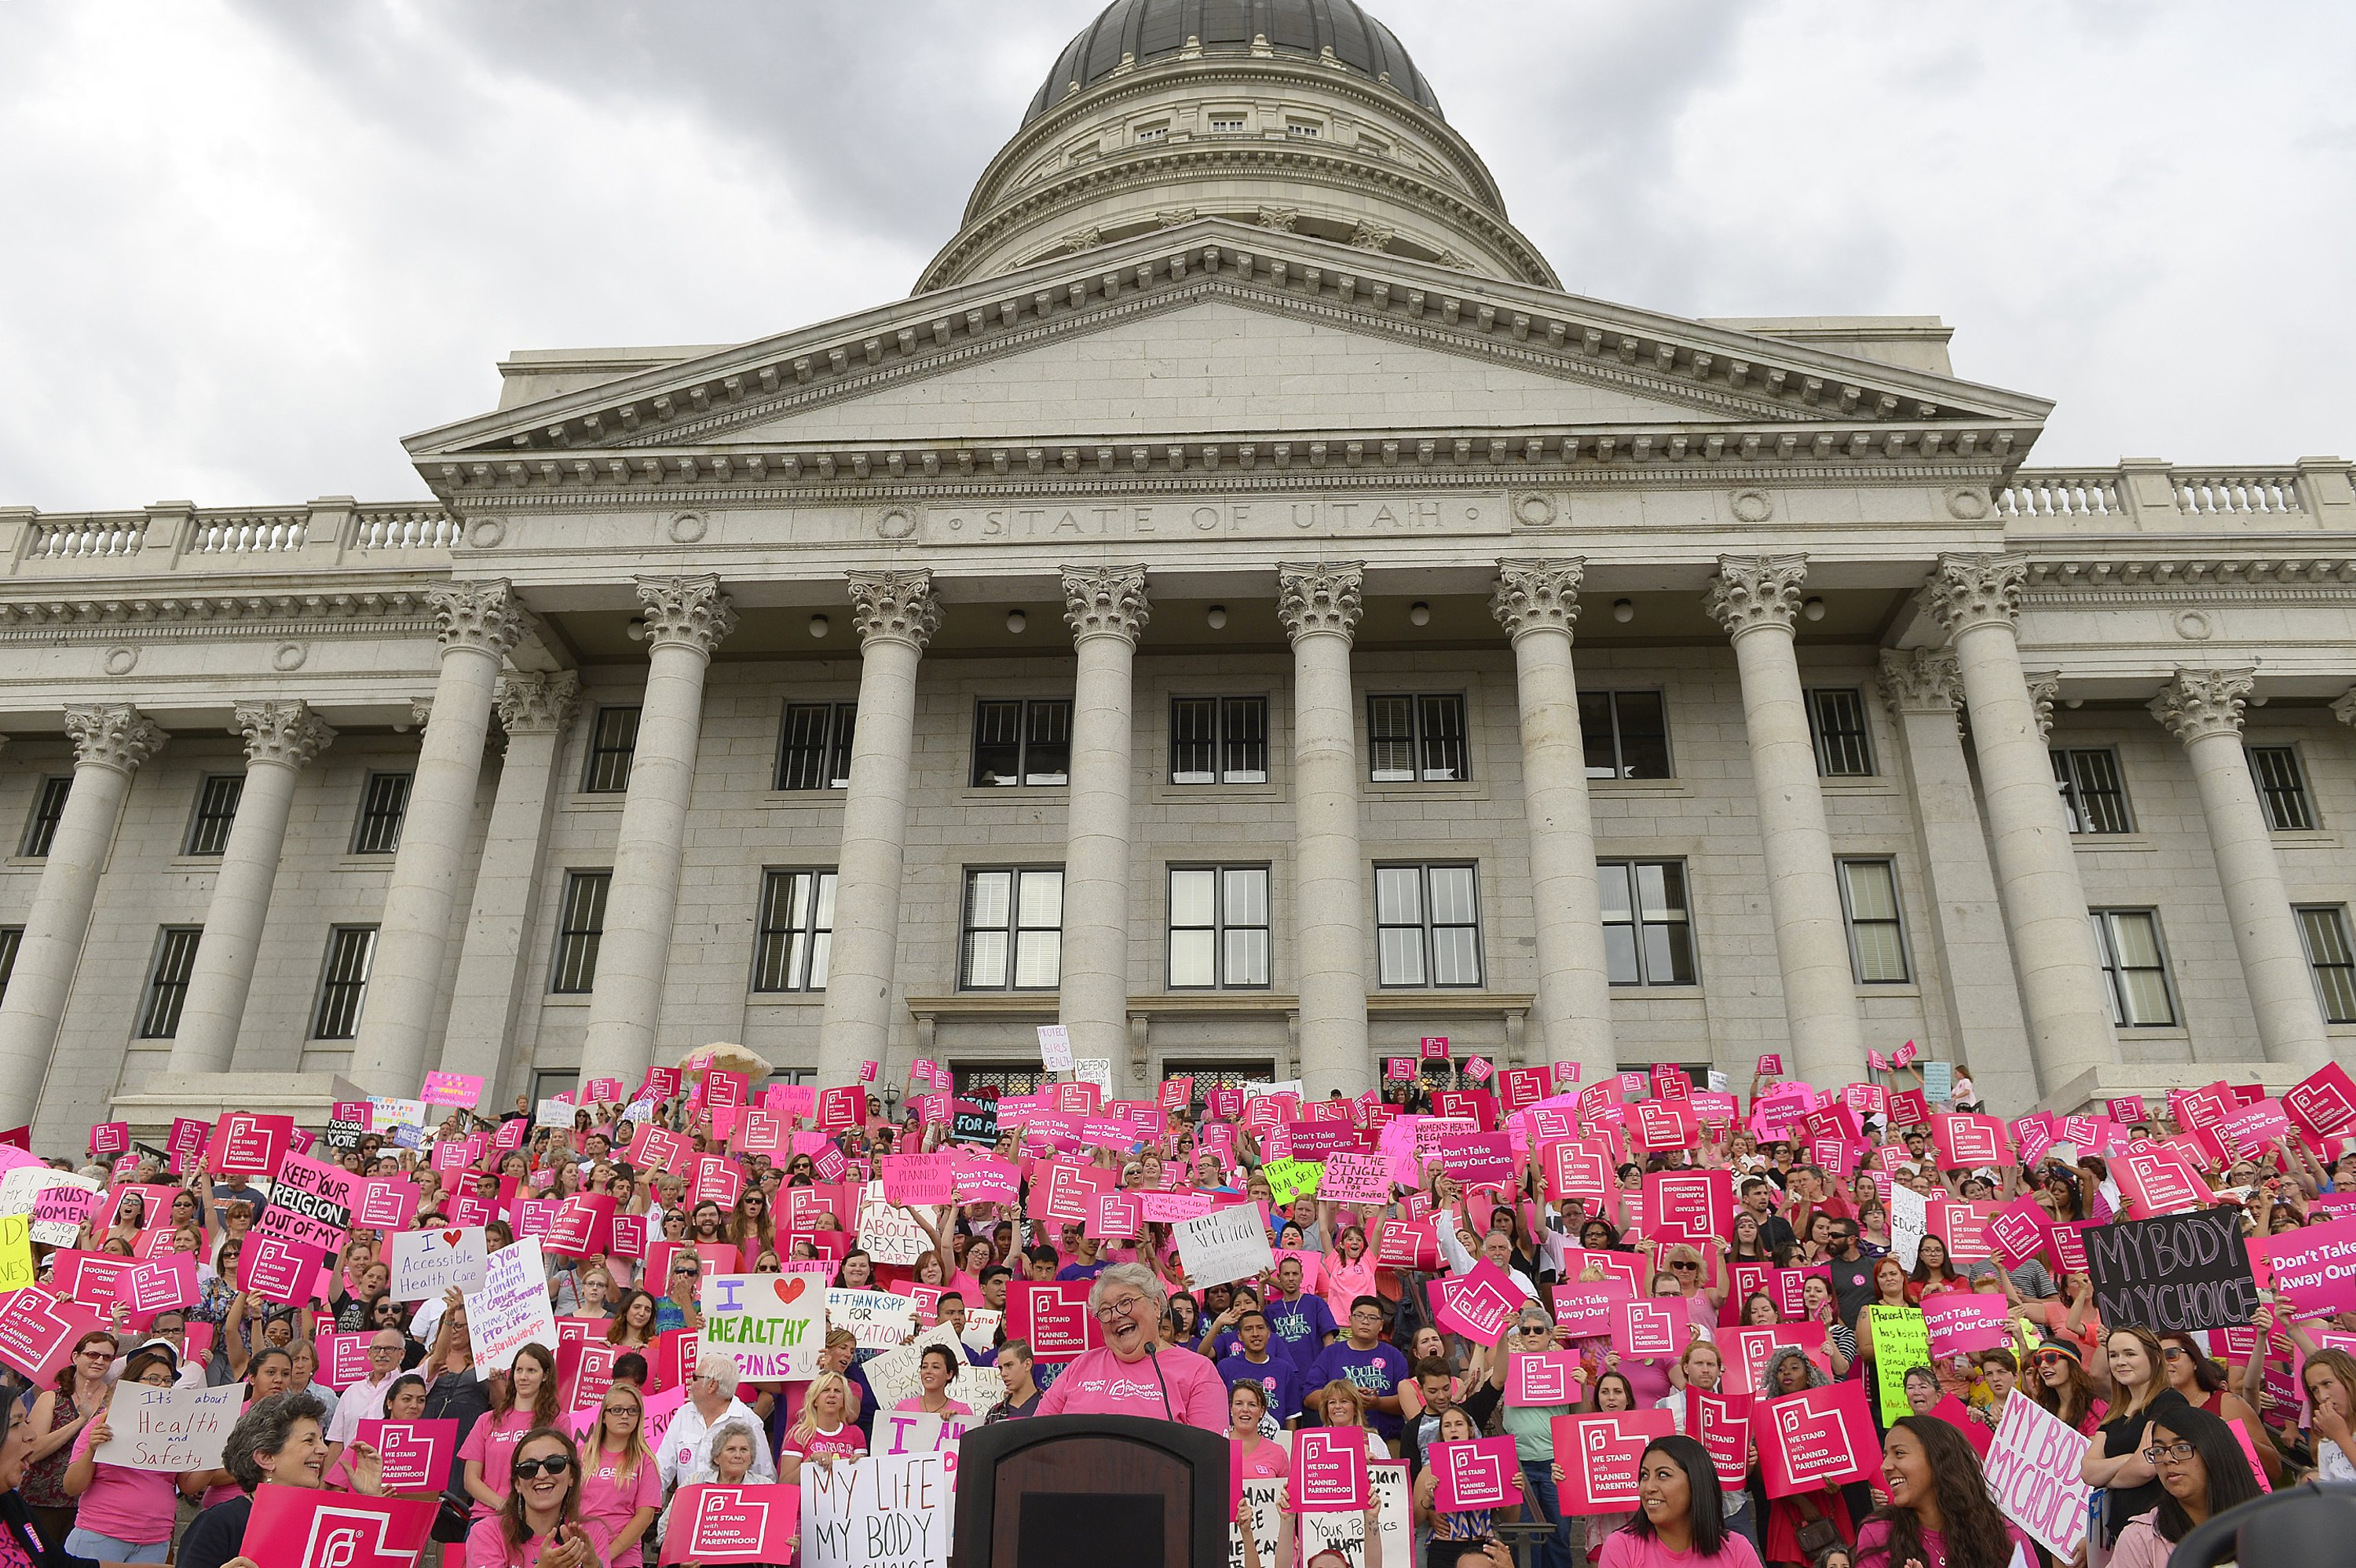 APNewsBreak: Utah's anesthesia abortion law unenforced